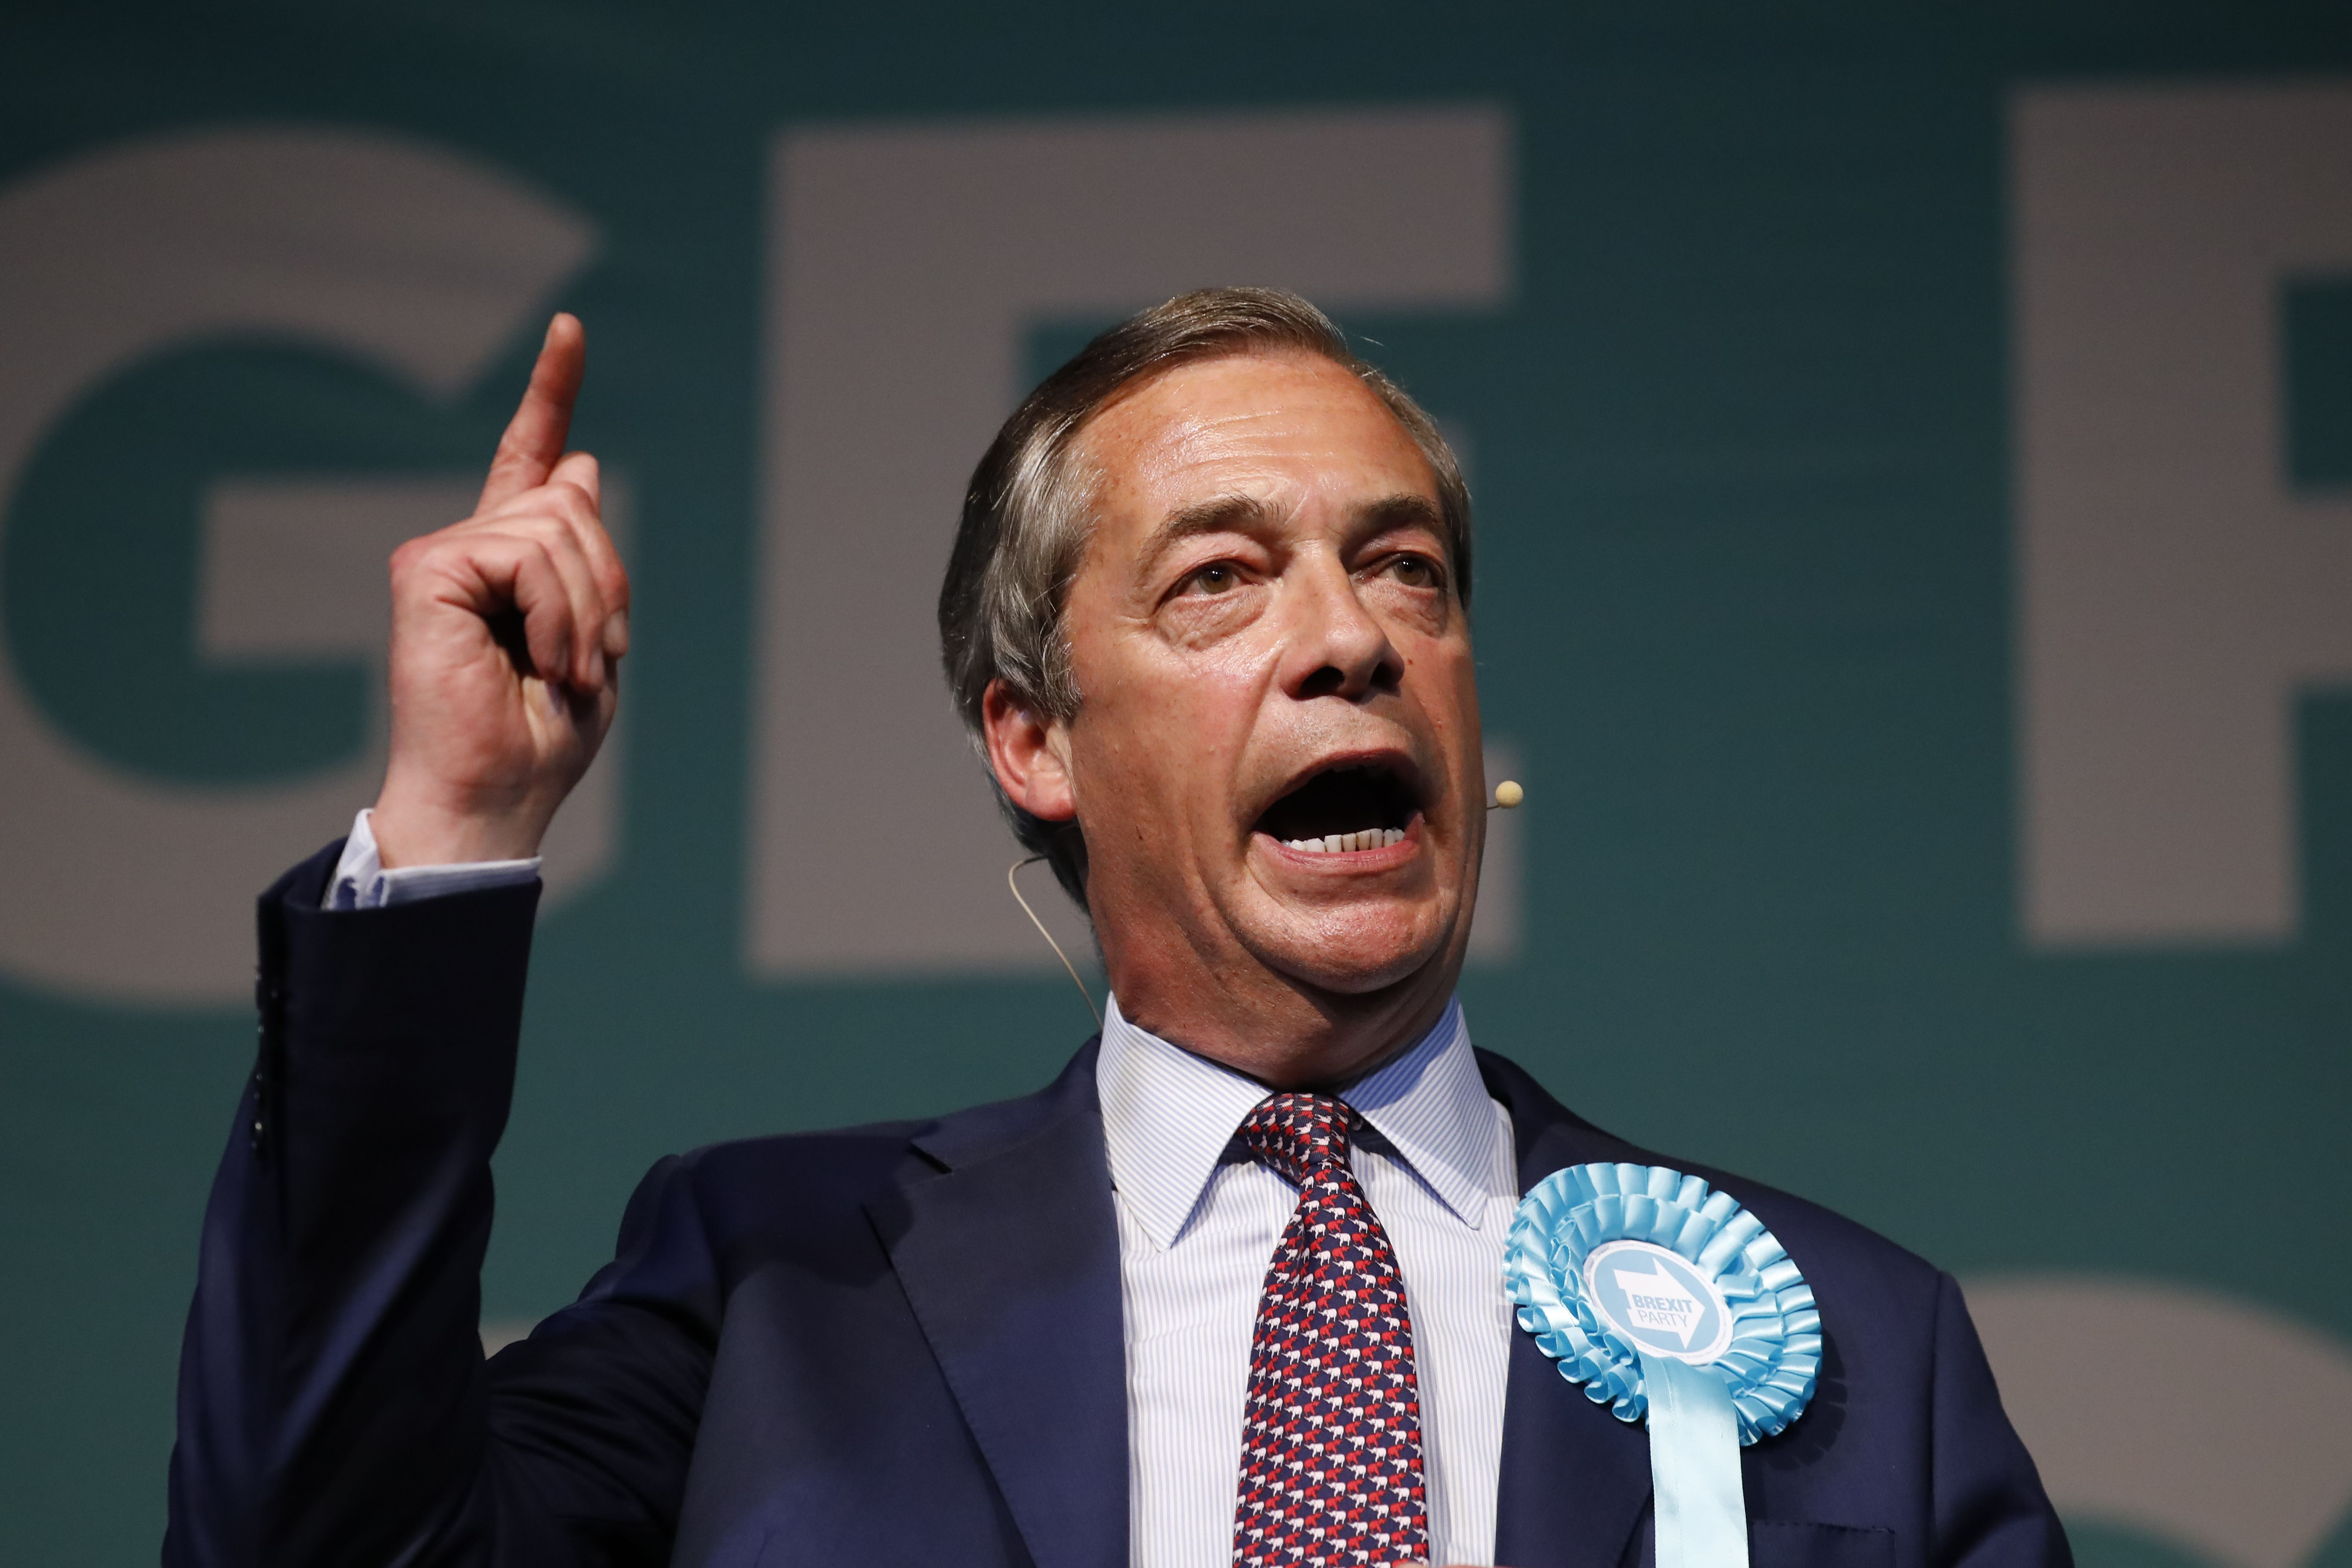 Brexit Party leader Nigel Farage addresses a European Parliament election campaign rally at Olympia in London on May 21.